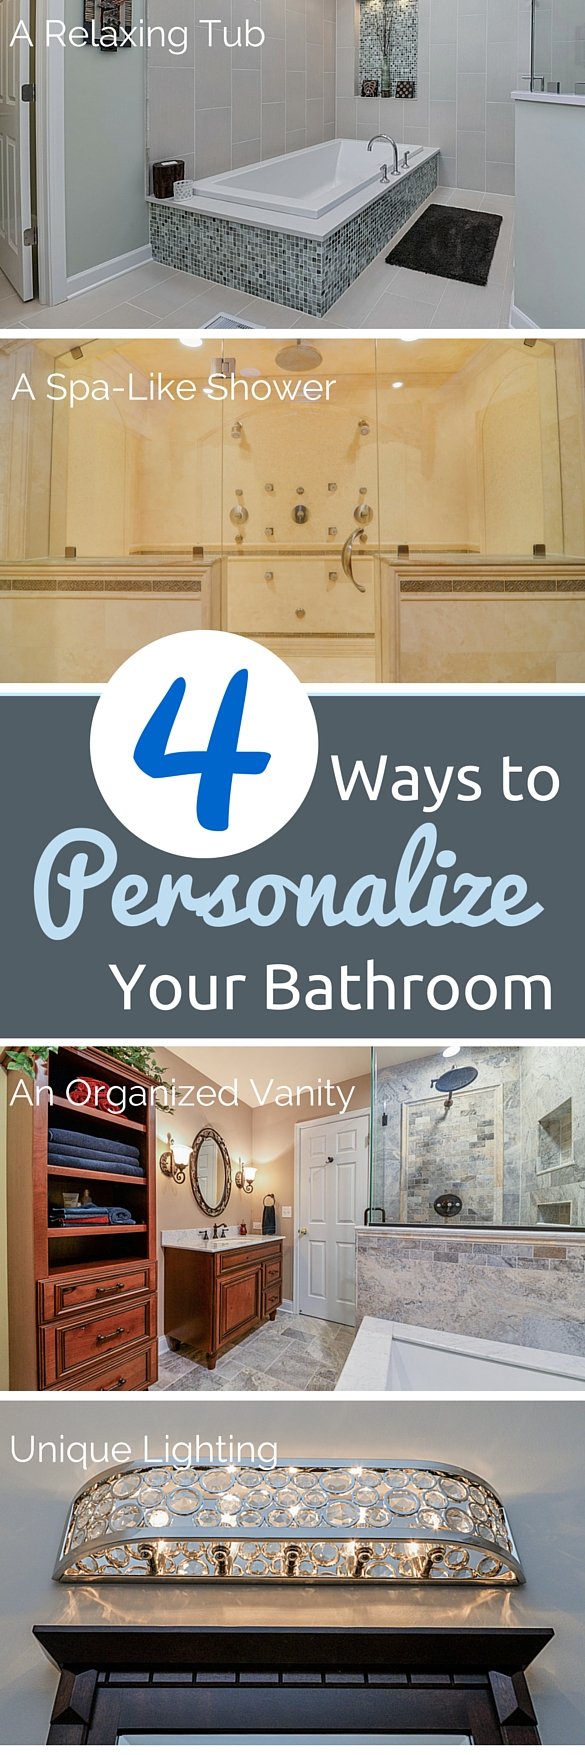 4 Ways to Personalize Your Bathroom Sebring Services